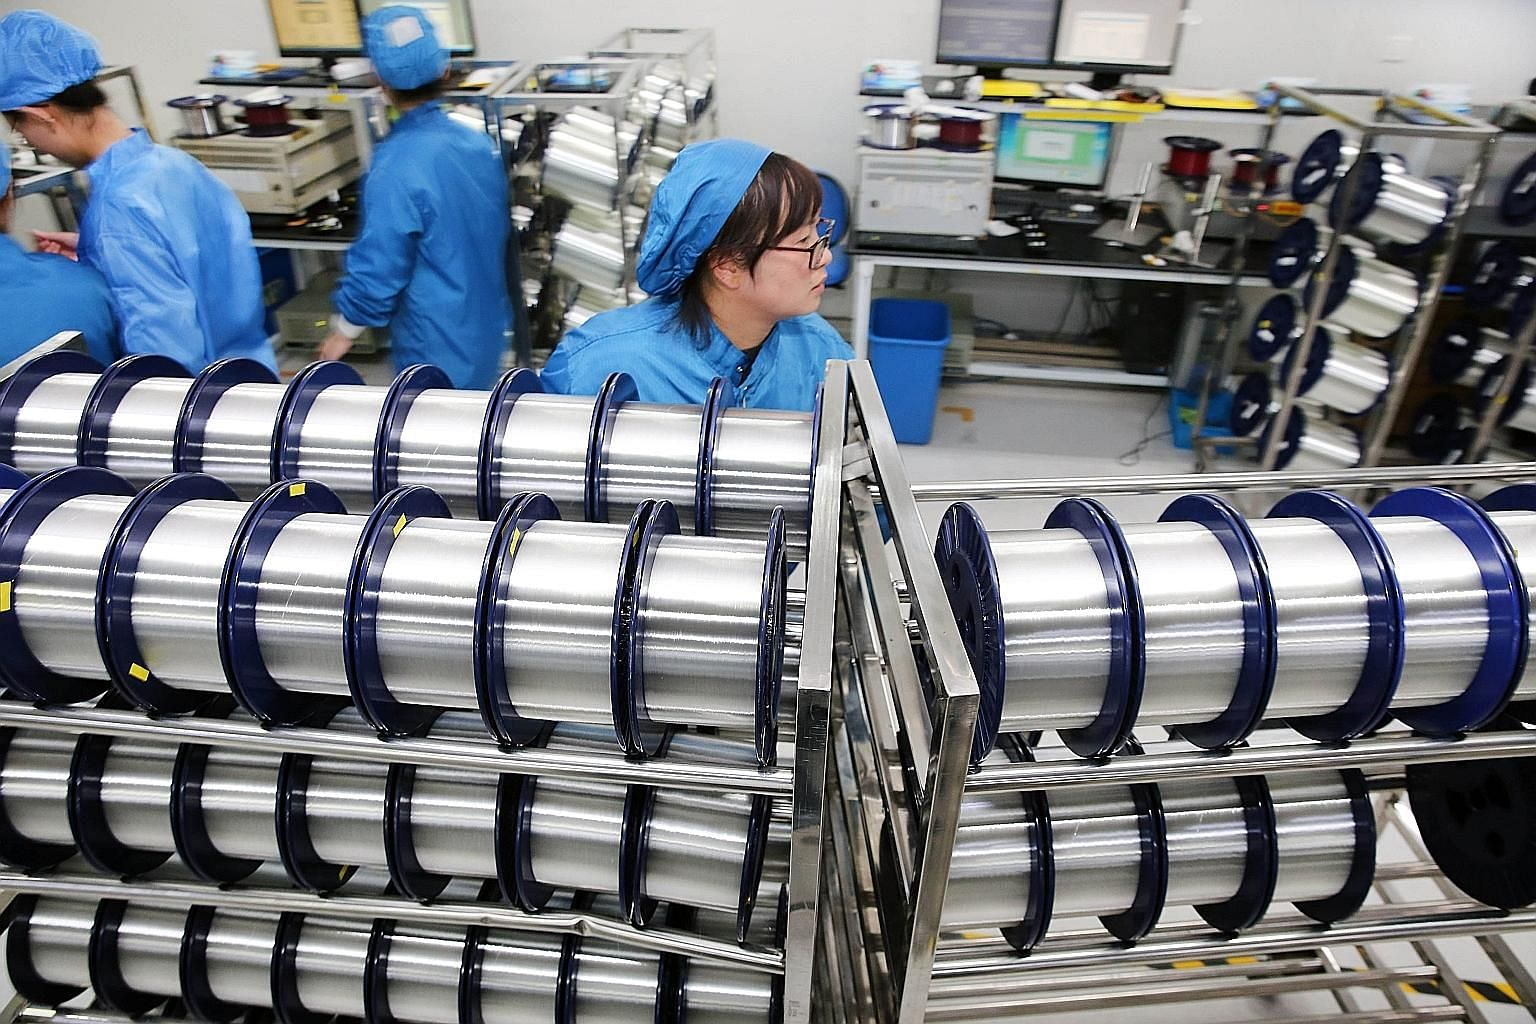 A fibre-optic cable factory in China's Jiangsu province. Head honchos in Singapore rank South-east Asia ahead of China for growth and investment opportunities, with US-China trade tensions their main concern.